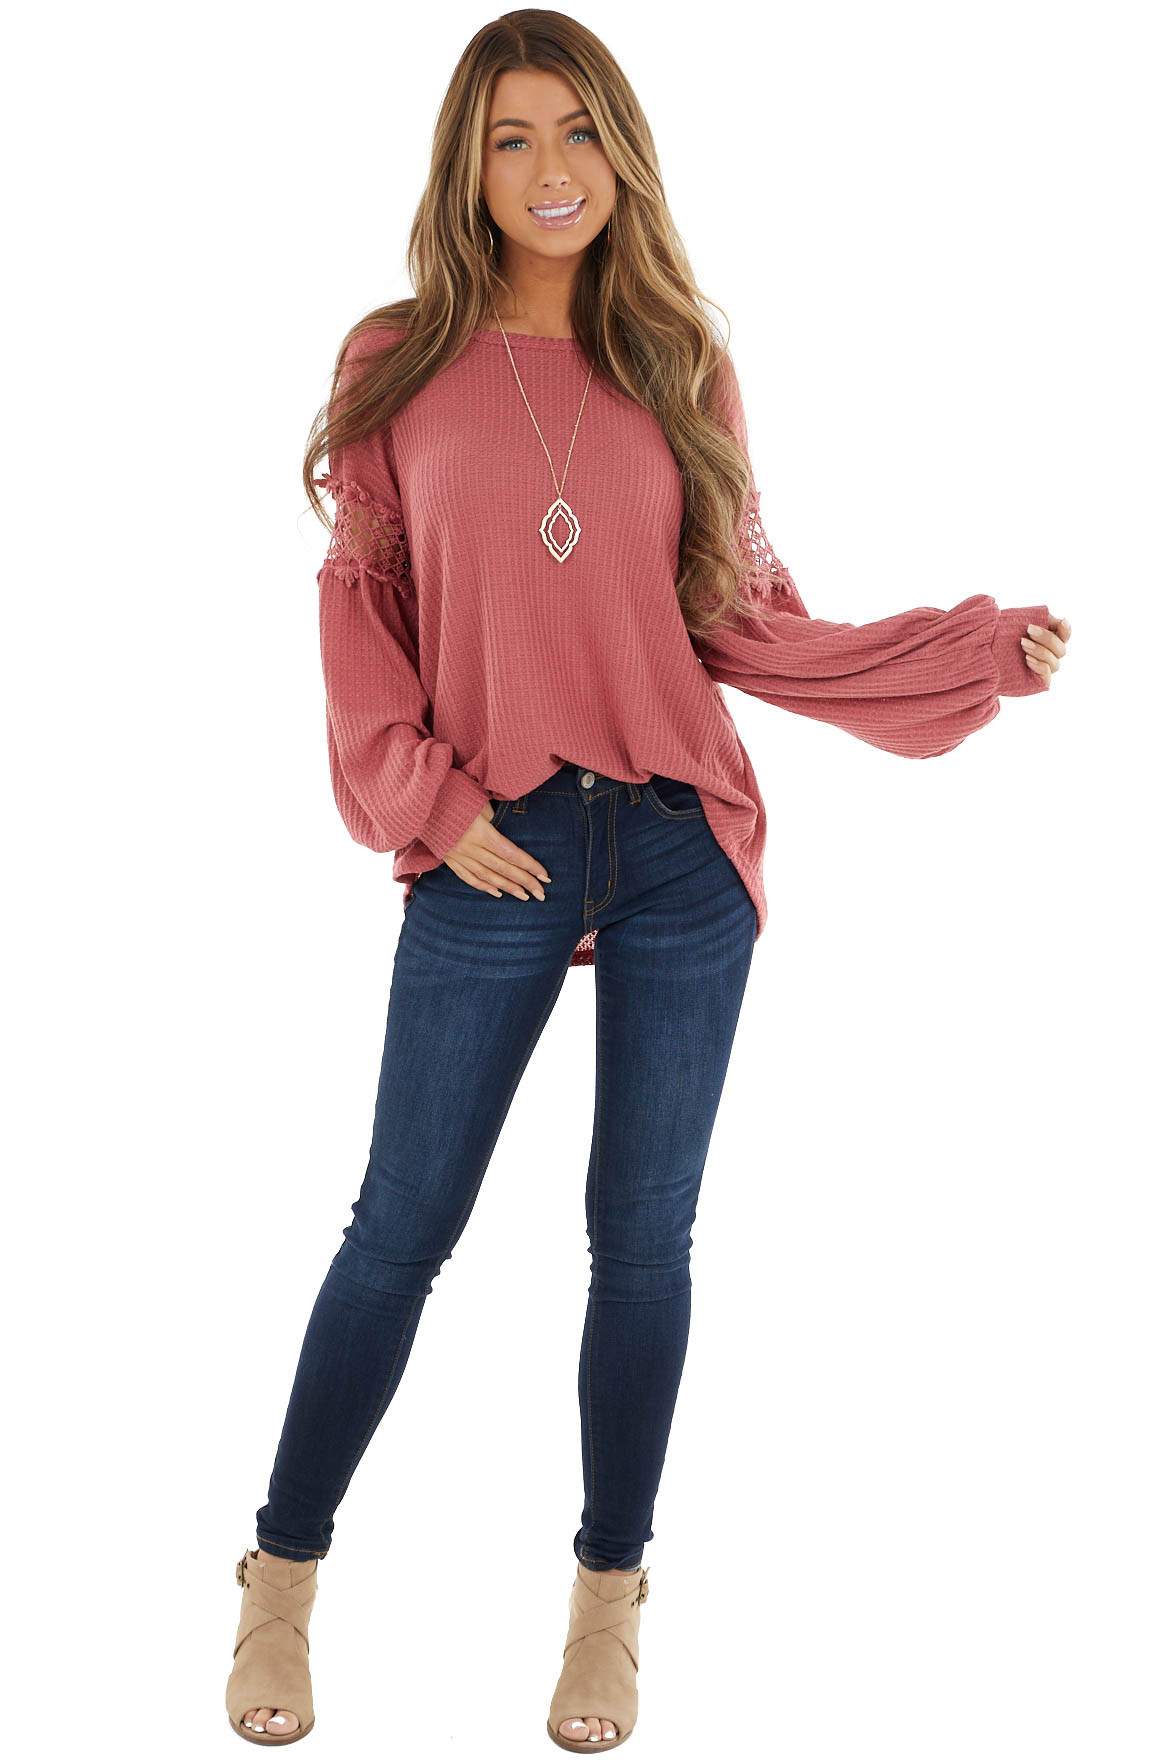 Marsala Waffle Knit Top with Crochet Peekaboo Sleeves